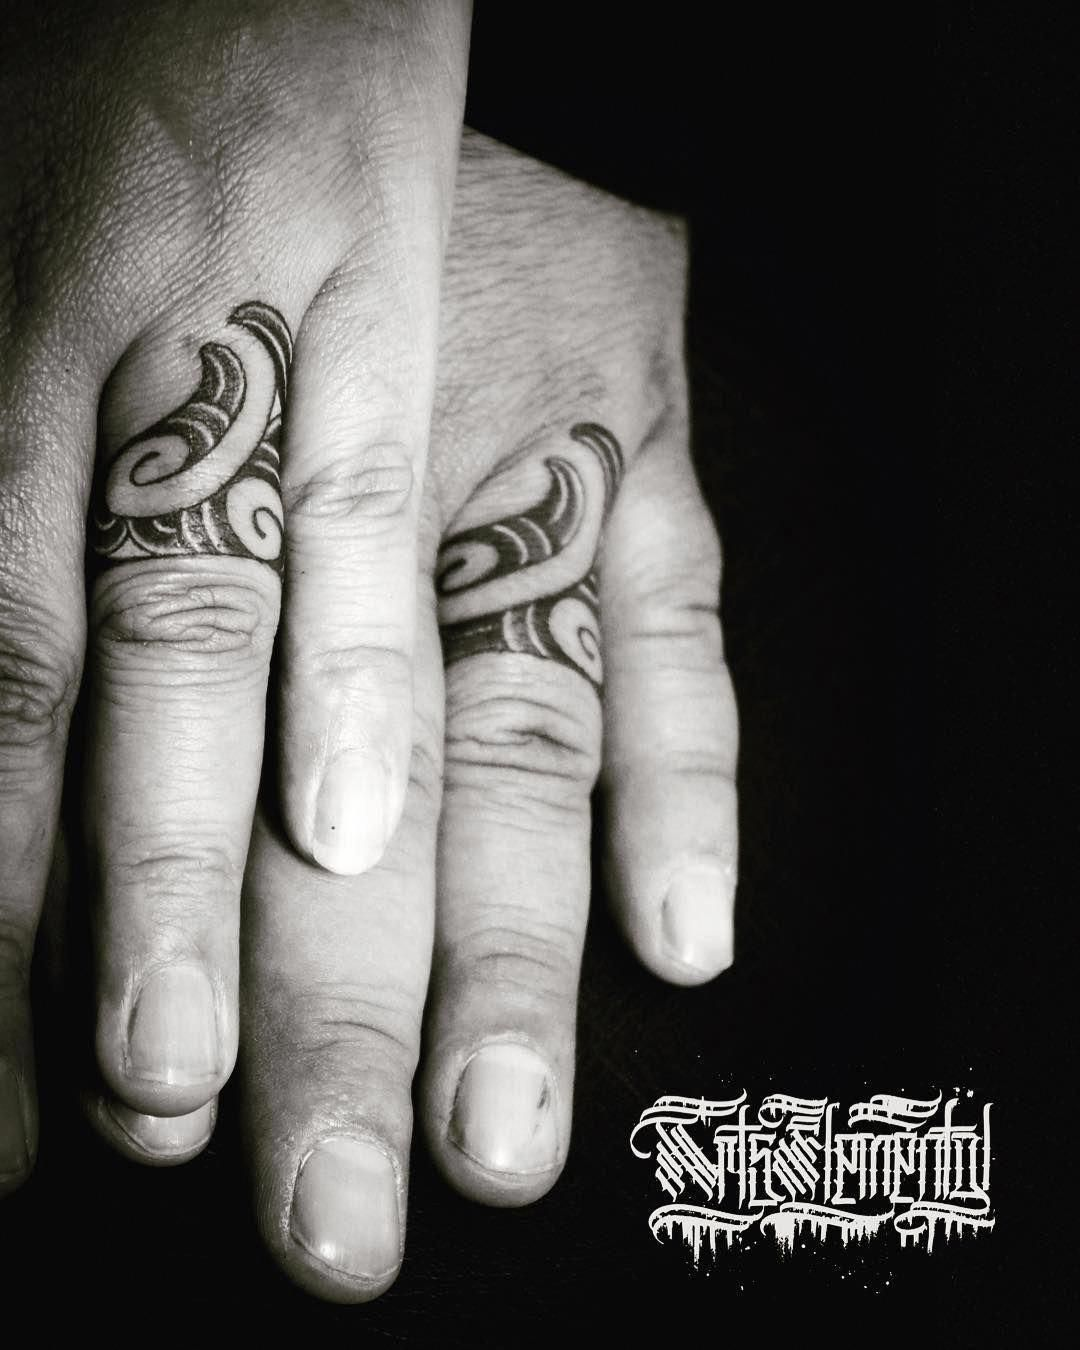 Maori Ring Tattoo: Maori Tattoos Band #Maoritattoos #Polynesiantattoos